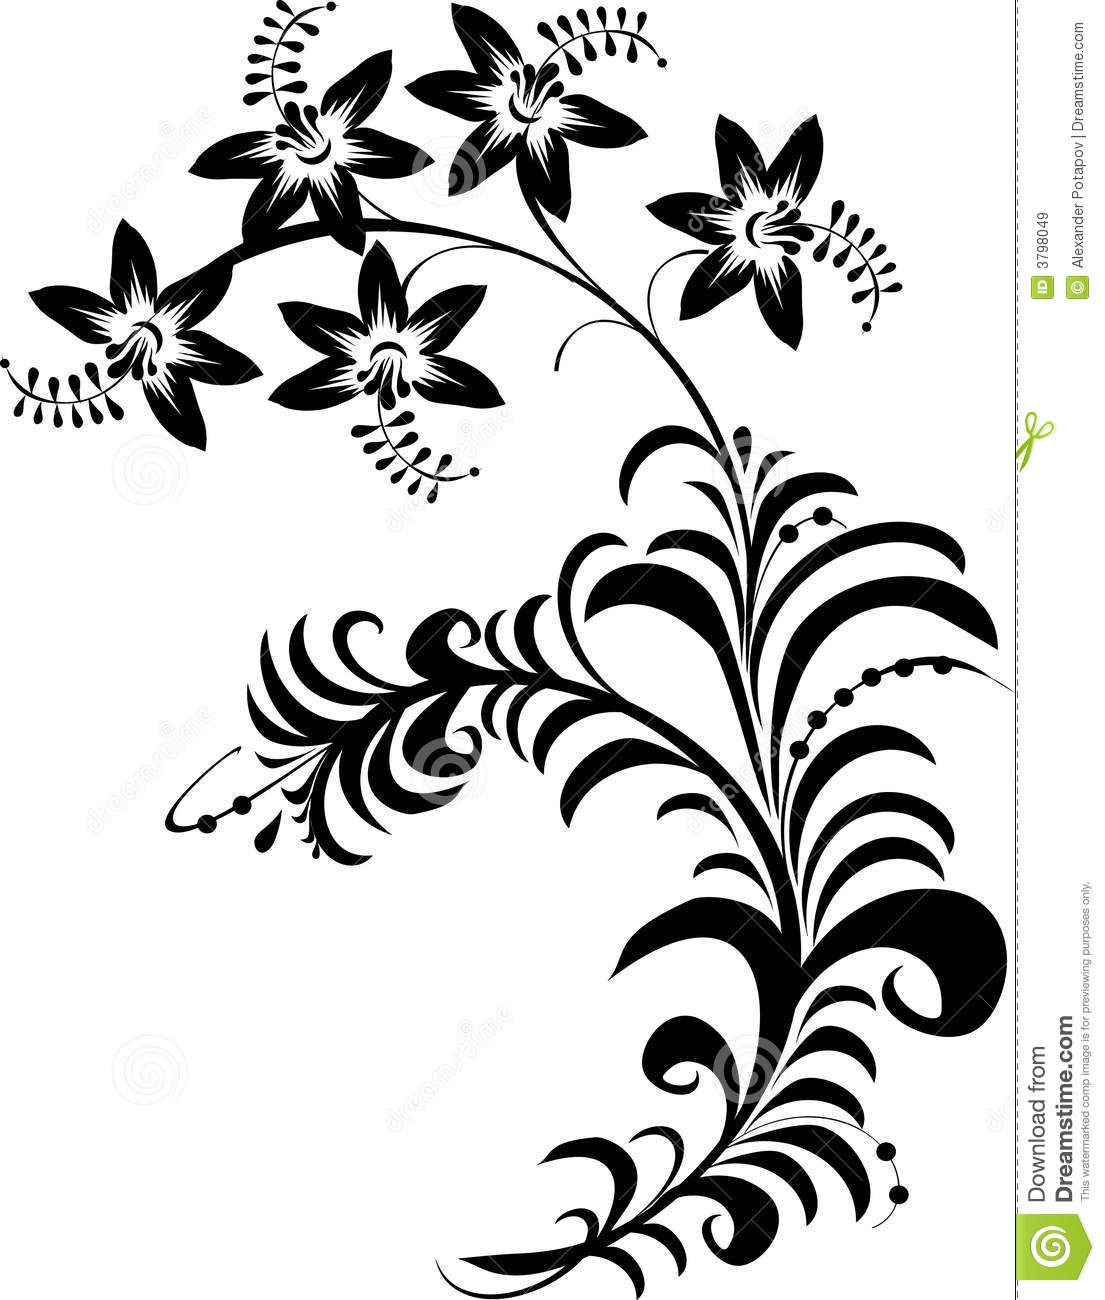 Black And White Flowers Stock Vector Illustration Of Illustration